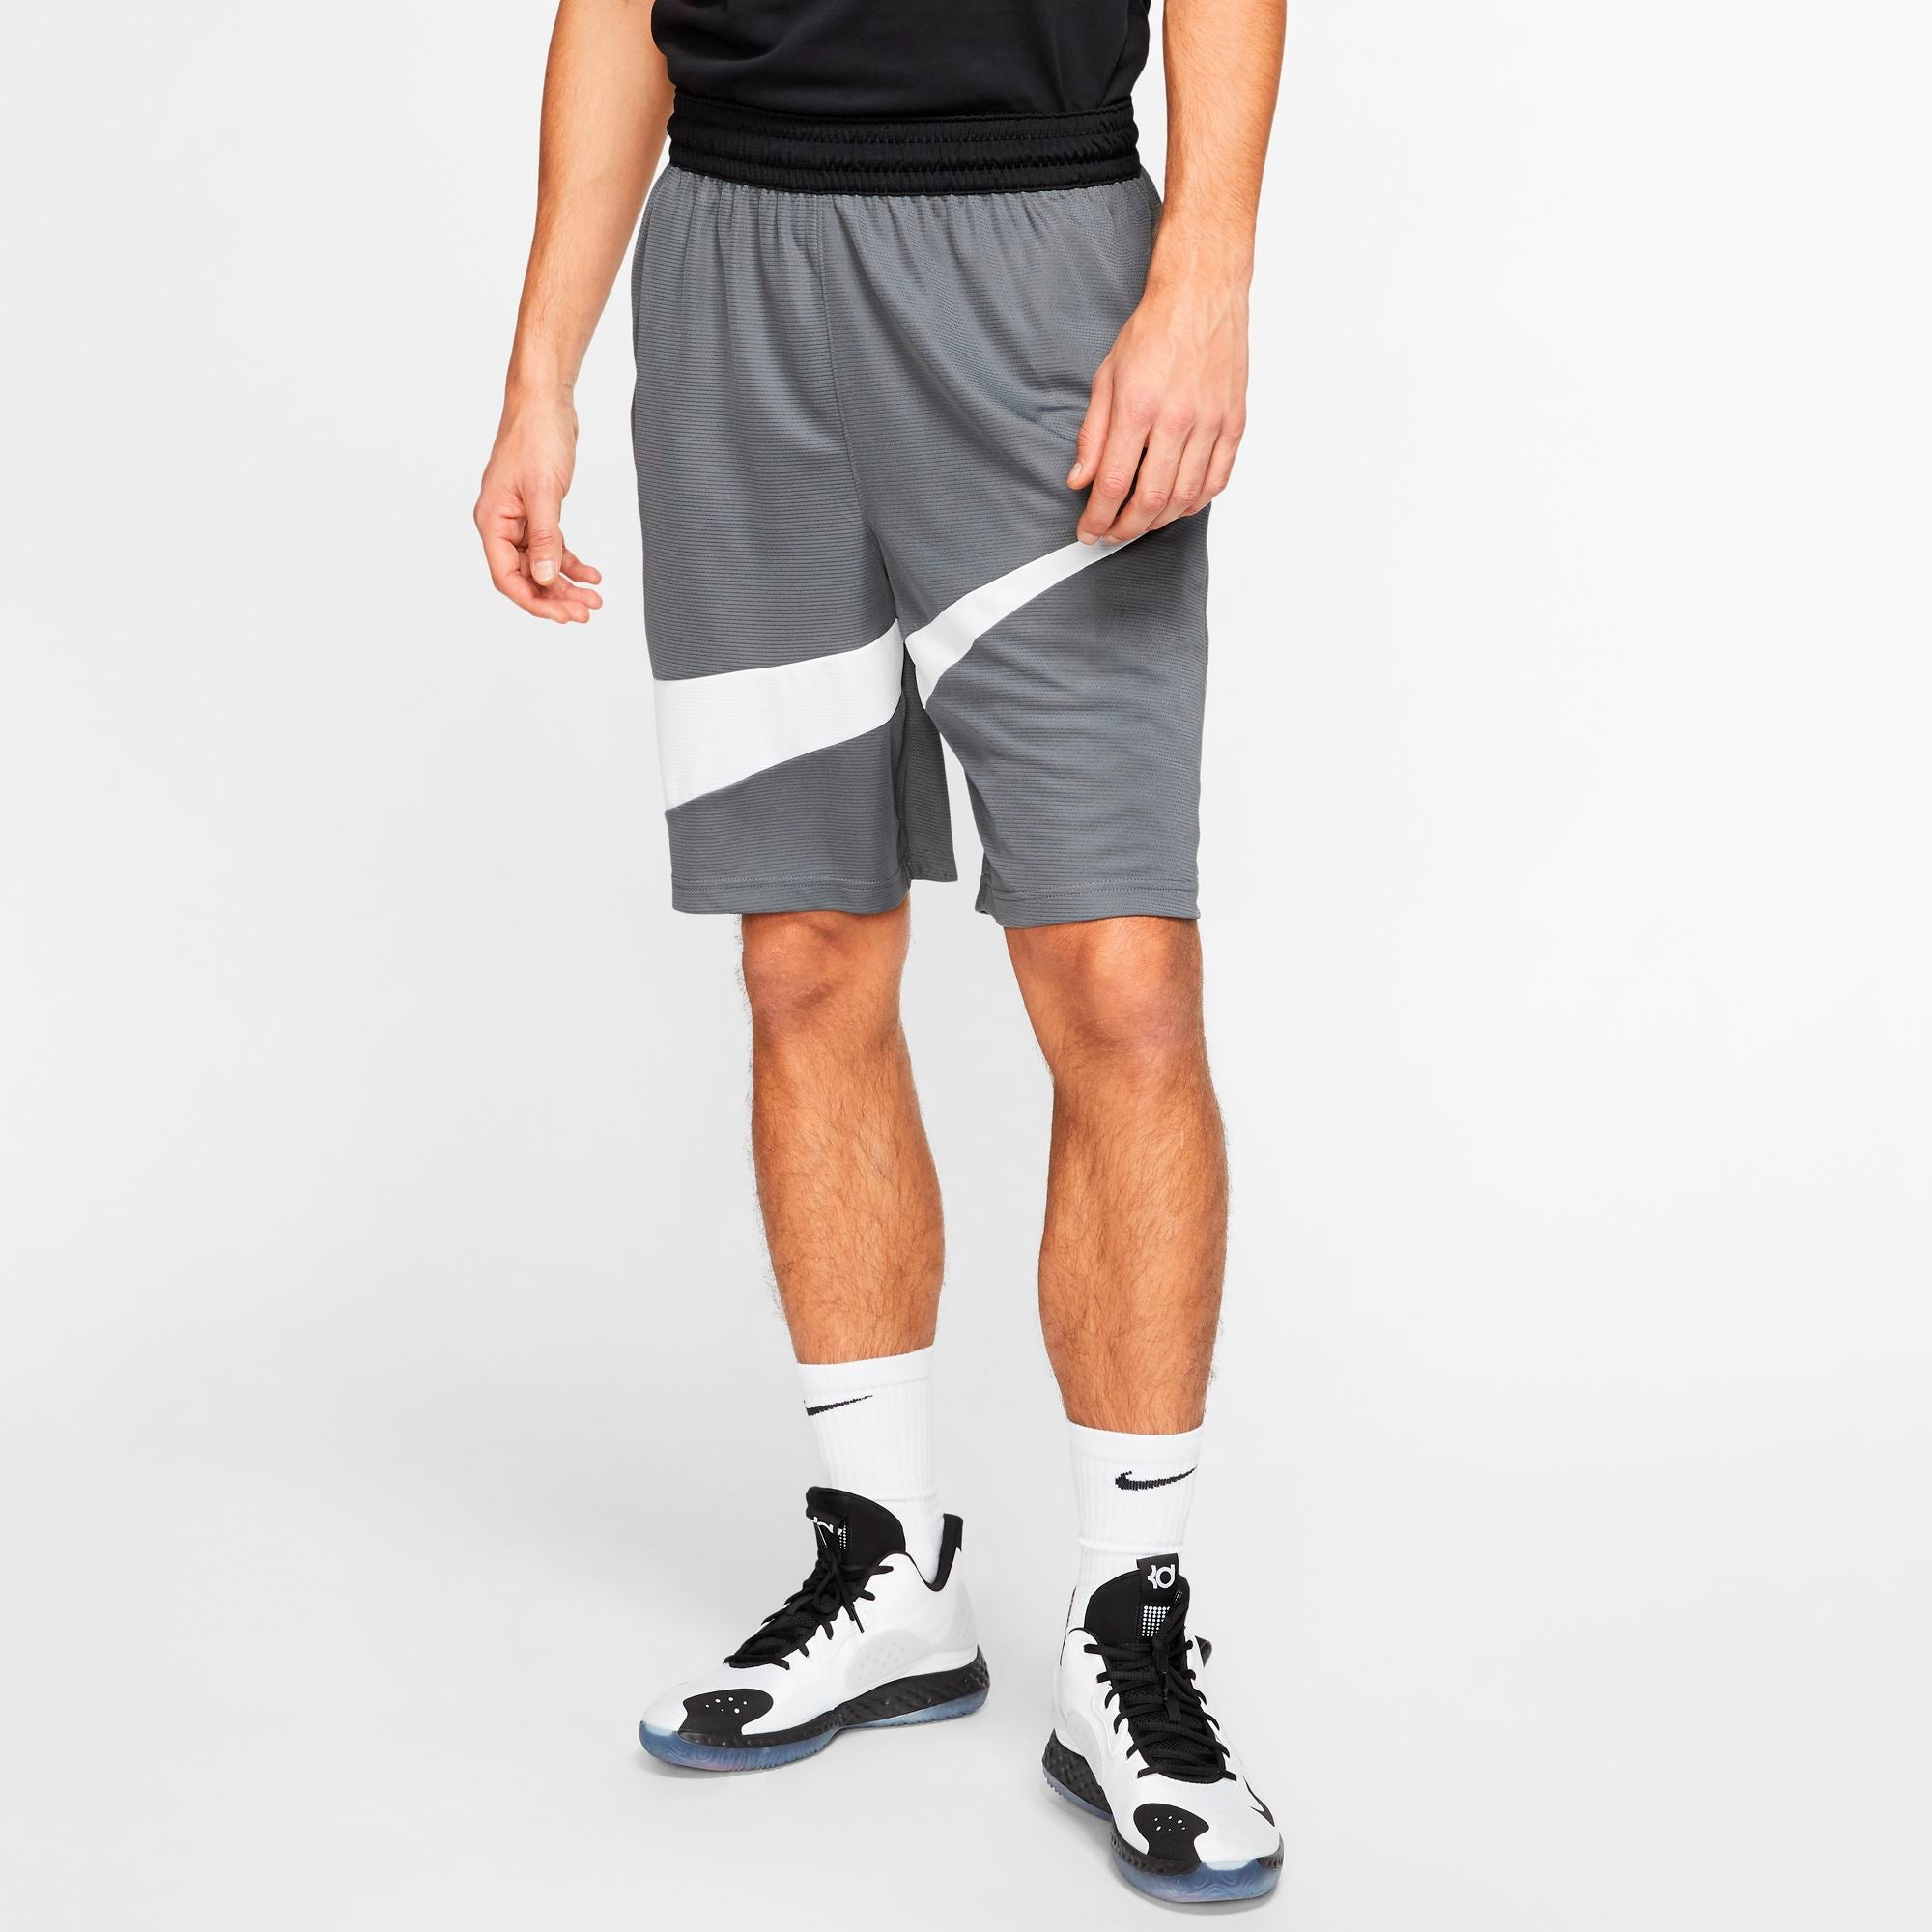 Nike Men's Dri-FIT Shorts - Iron Grey/White SP-ApparelShorts-Mens Nike